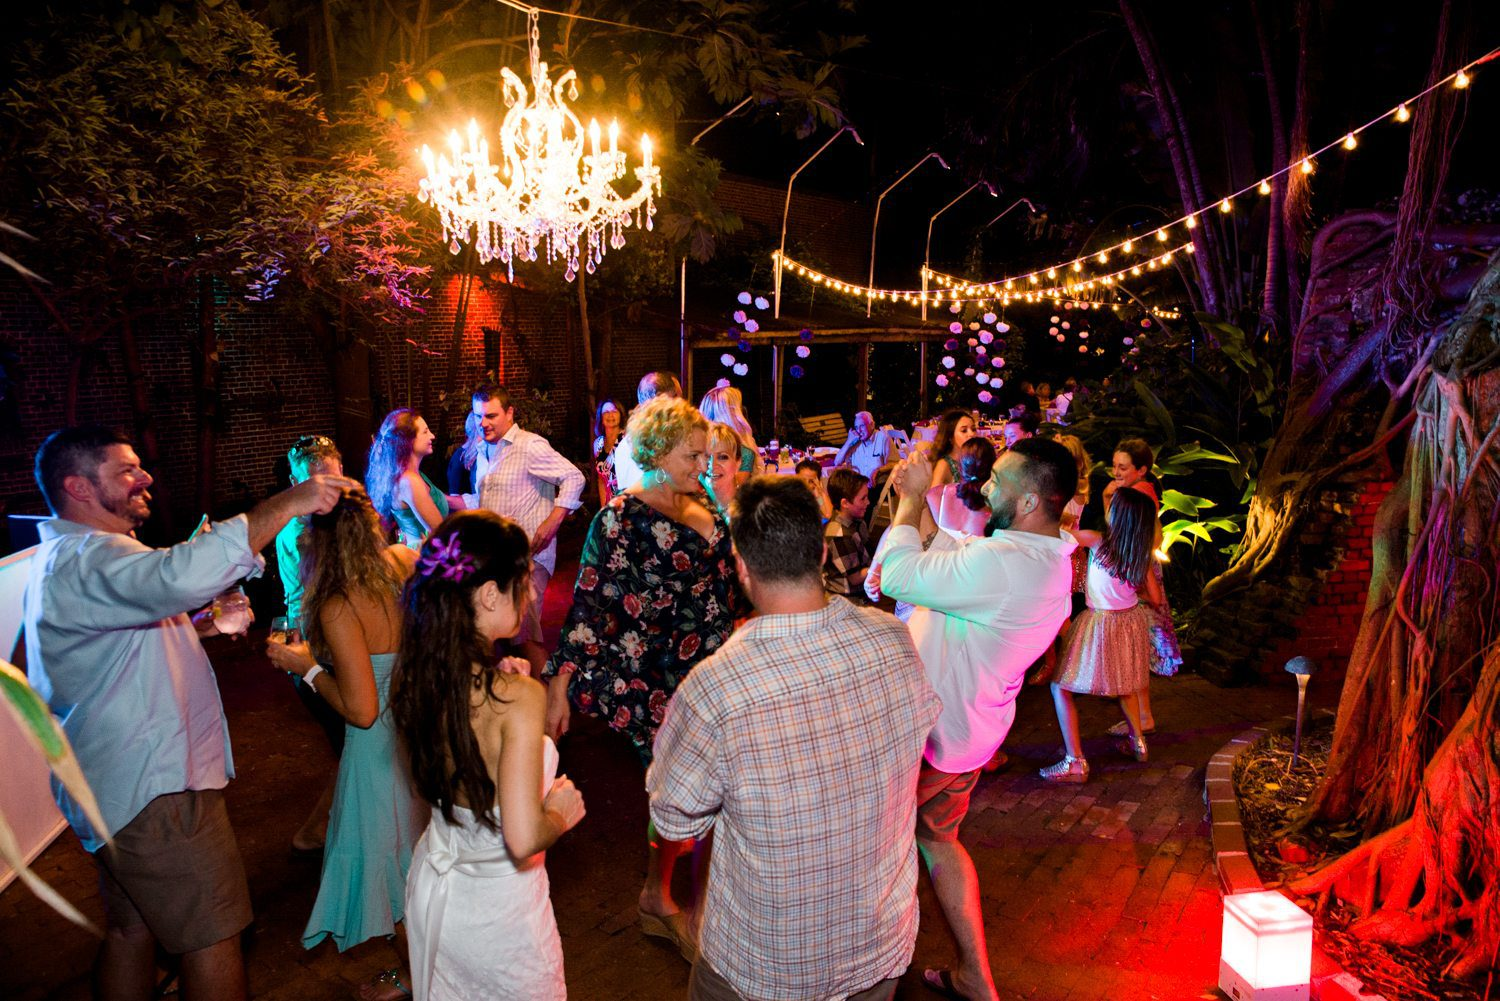 Tracey Joe Key West Garden Club 45 - Tracey & Joe | Key West Wedding Photographer | Key West Garden Club